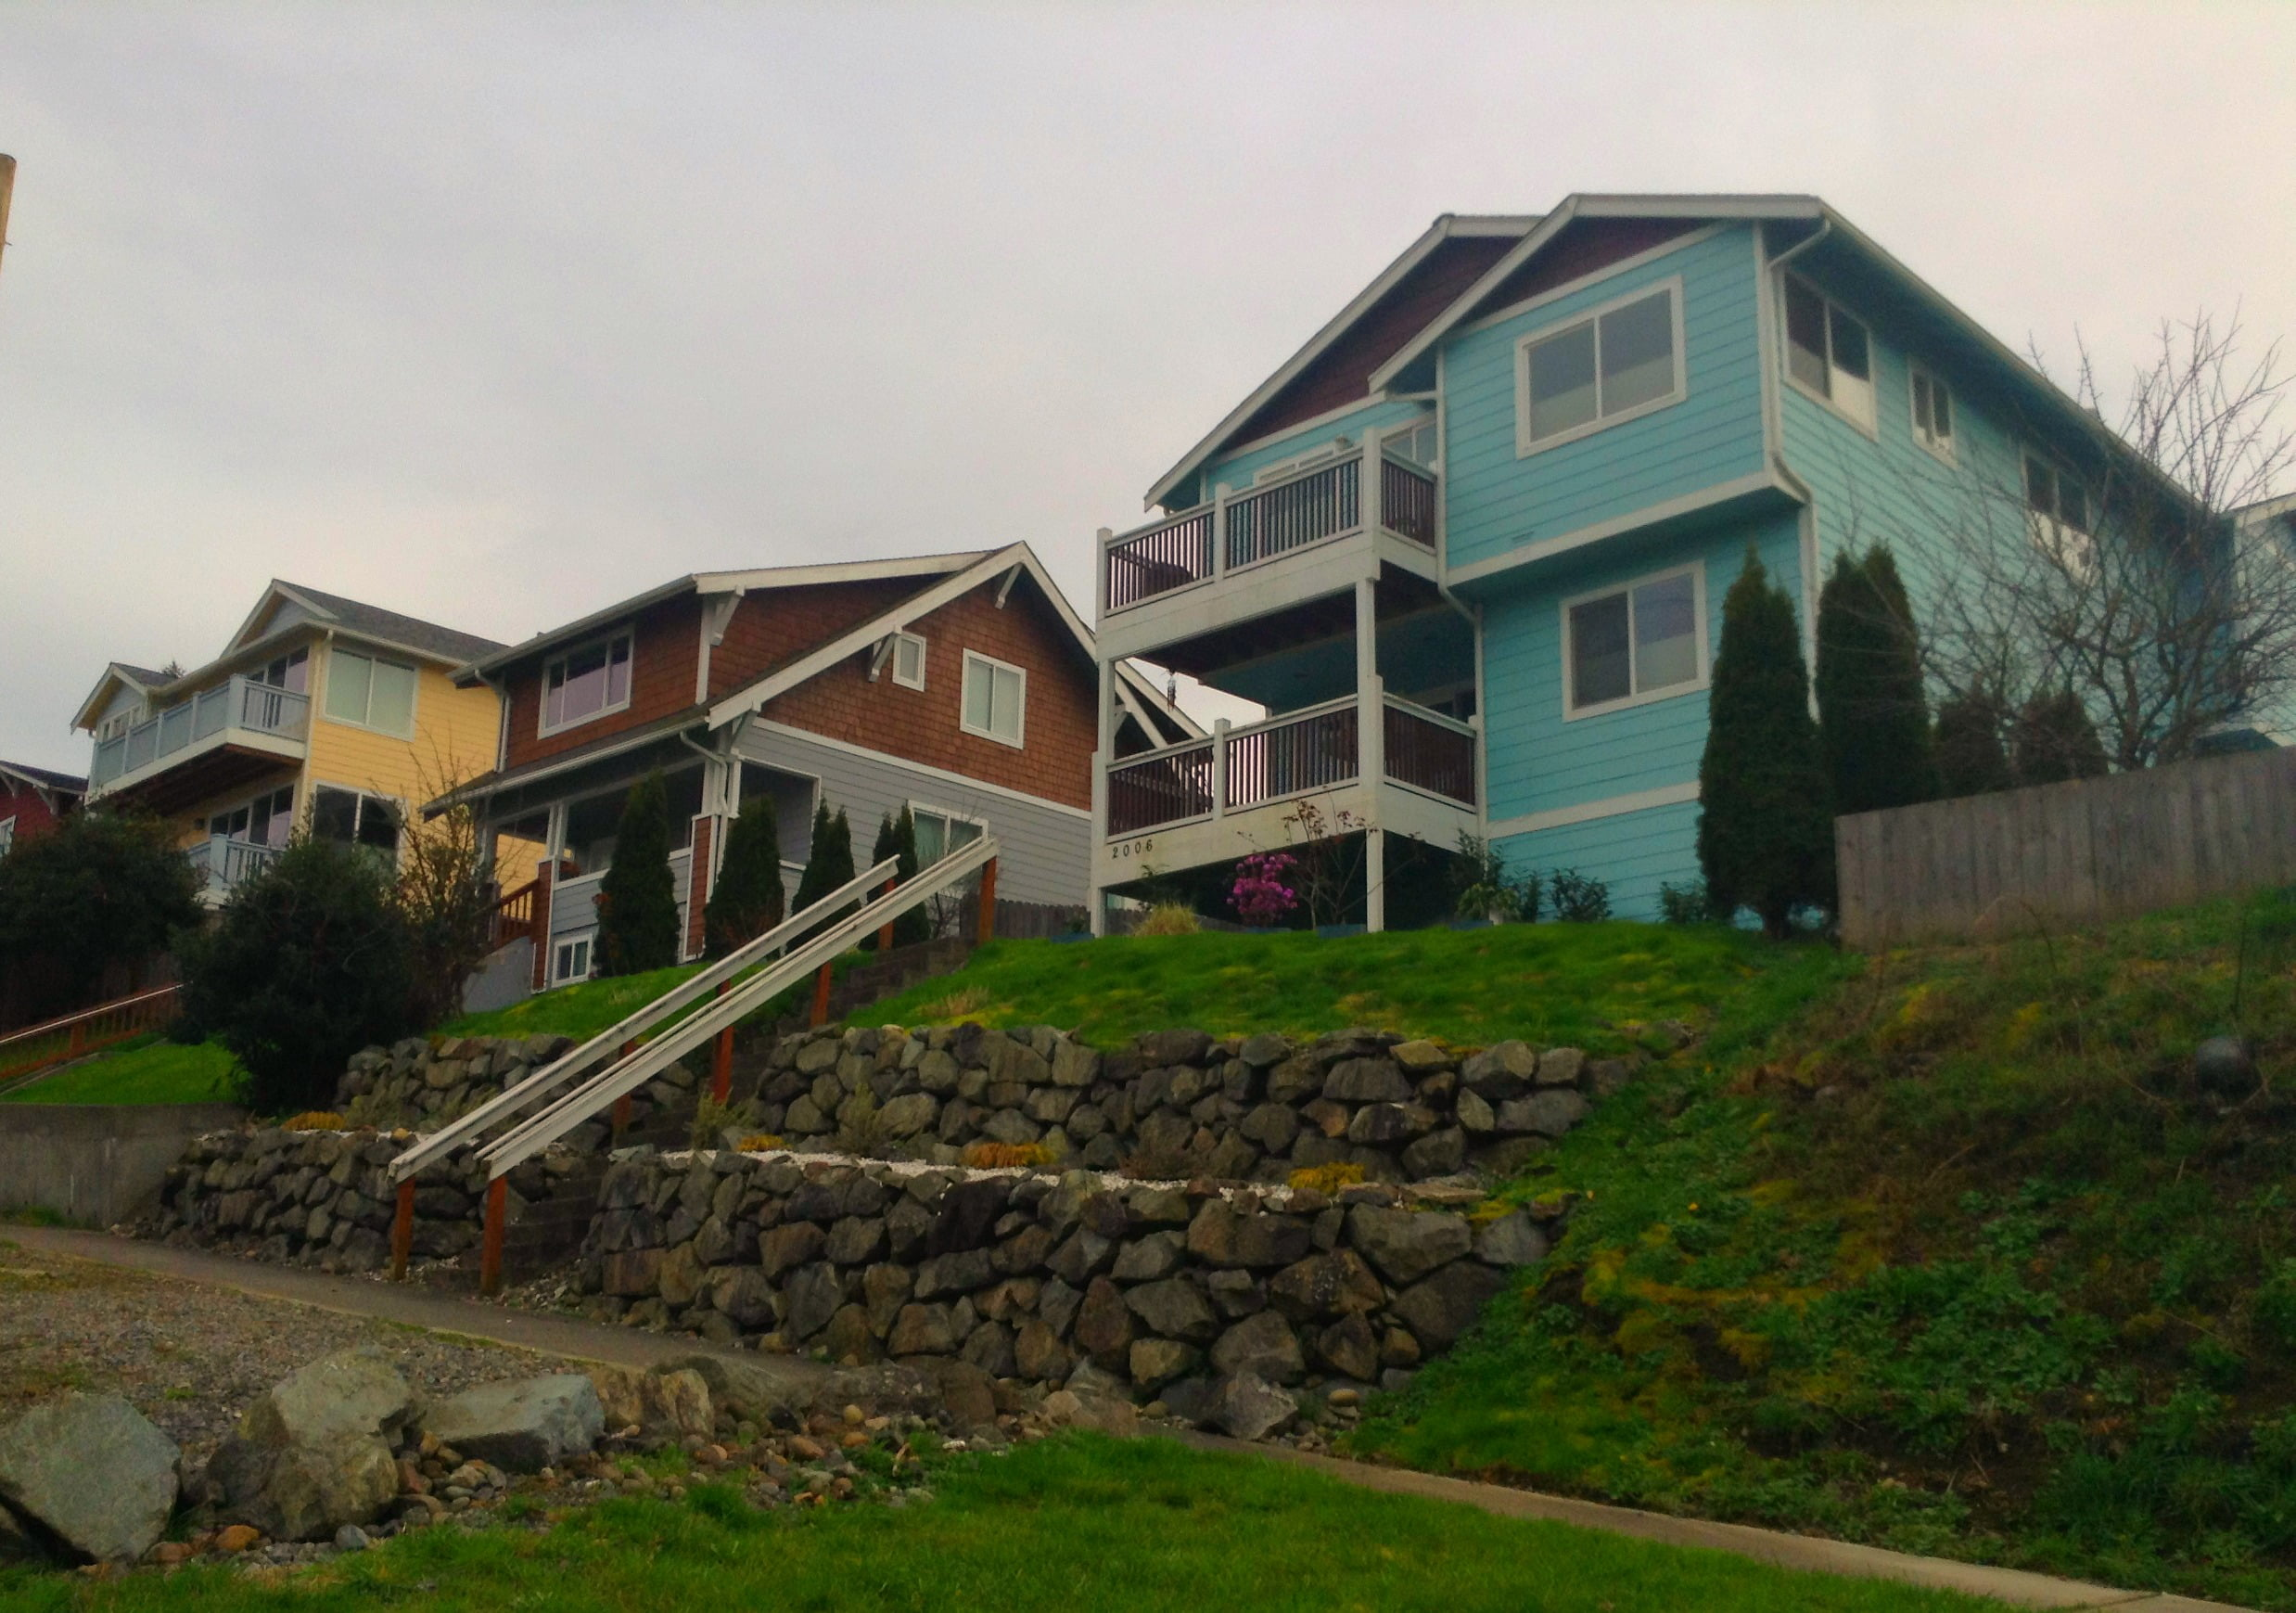 Houses on a hillside in Tacoma's Eastside neighborhood